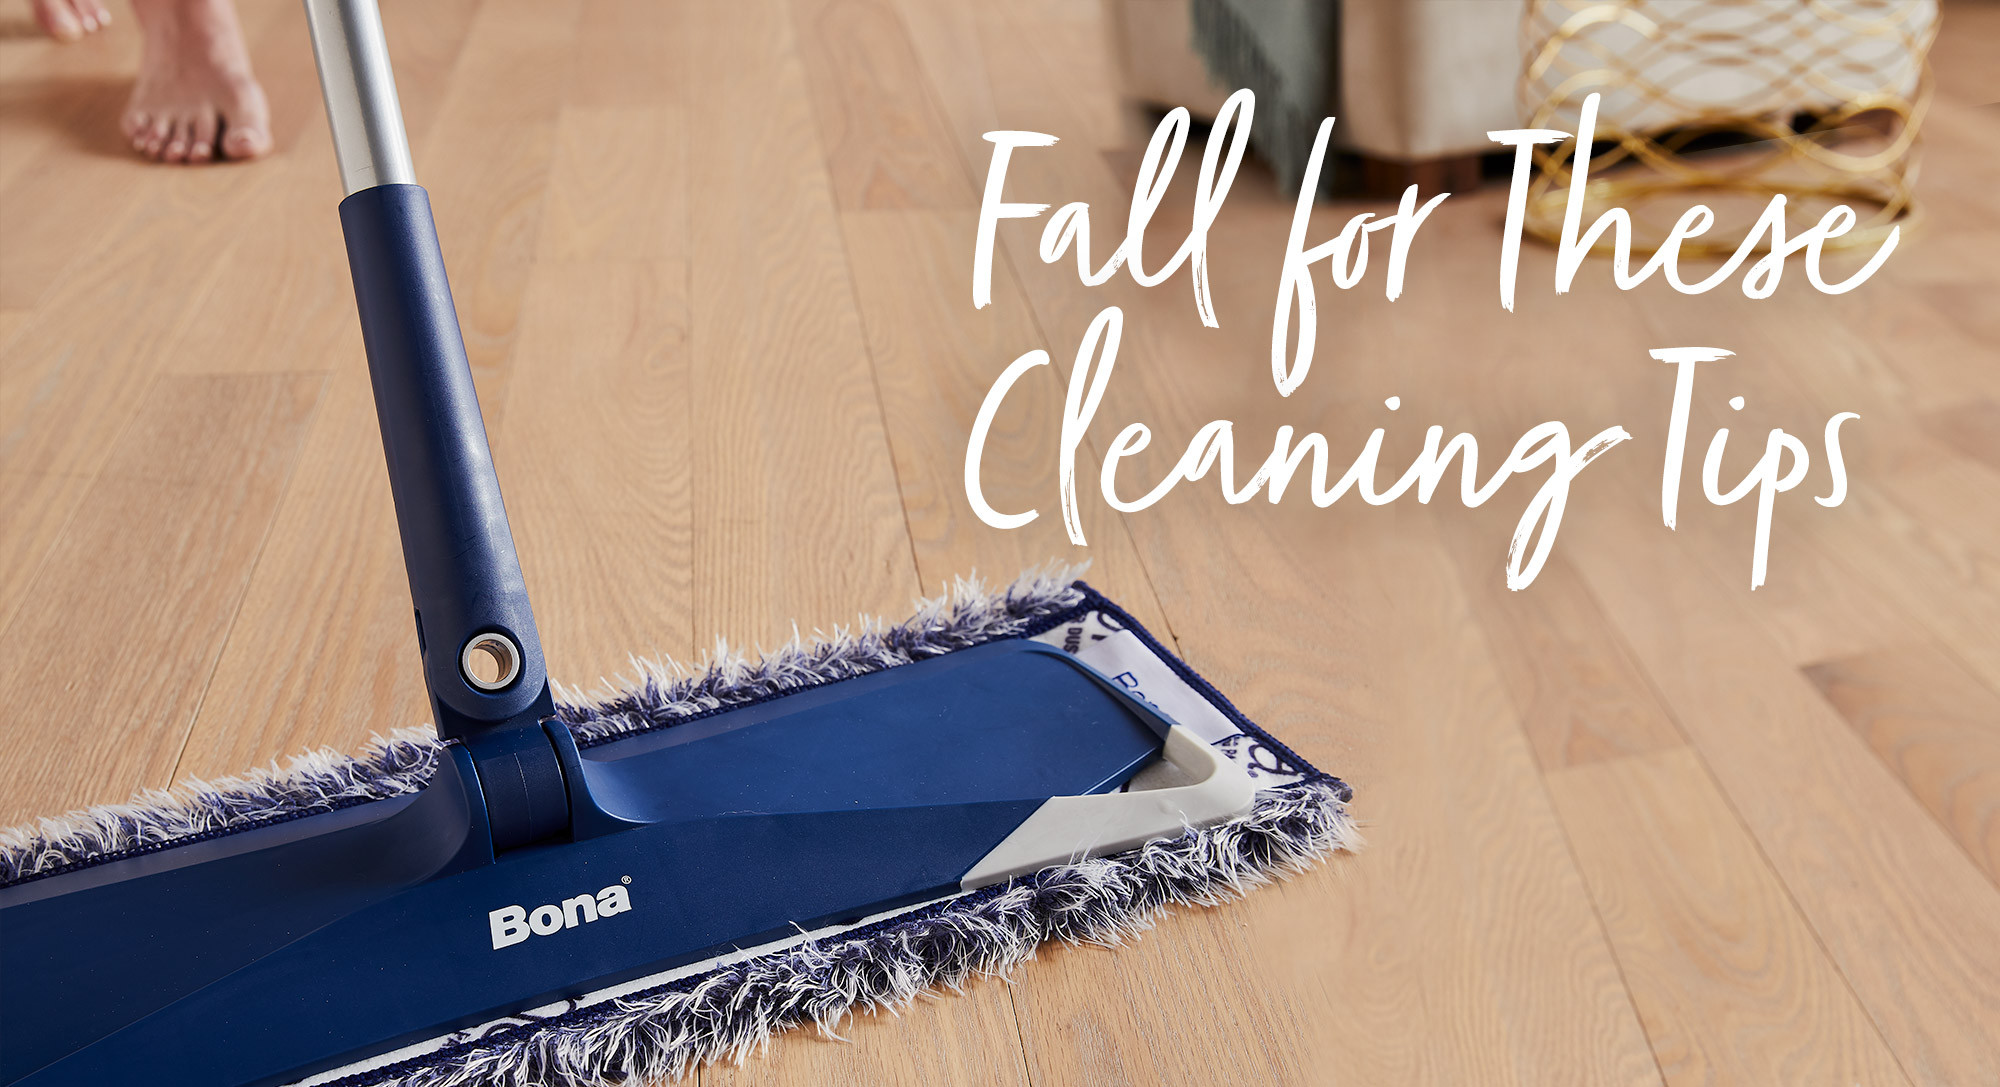 best hardwood steam floor cleaners consumer reports of home bona us inside fall feature2